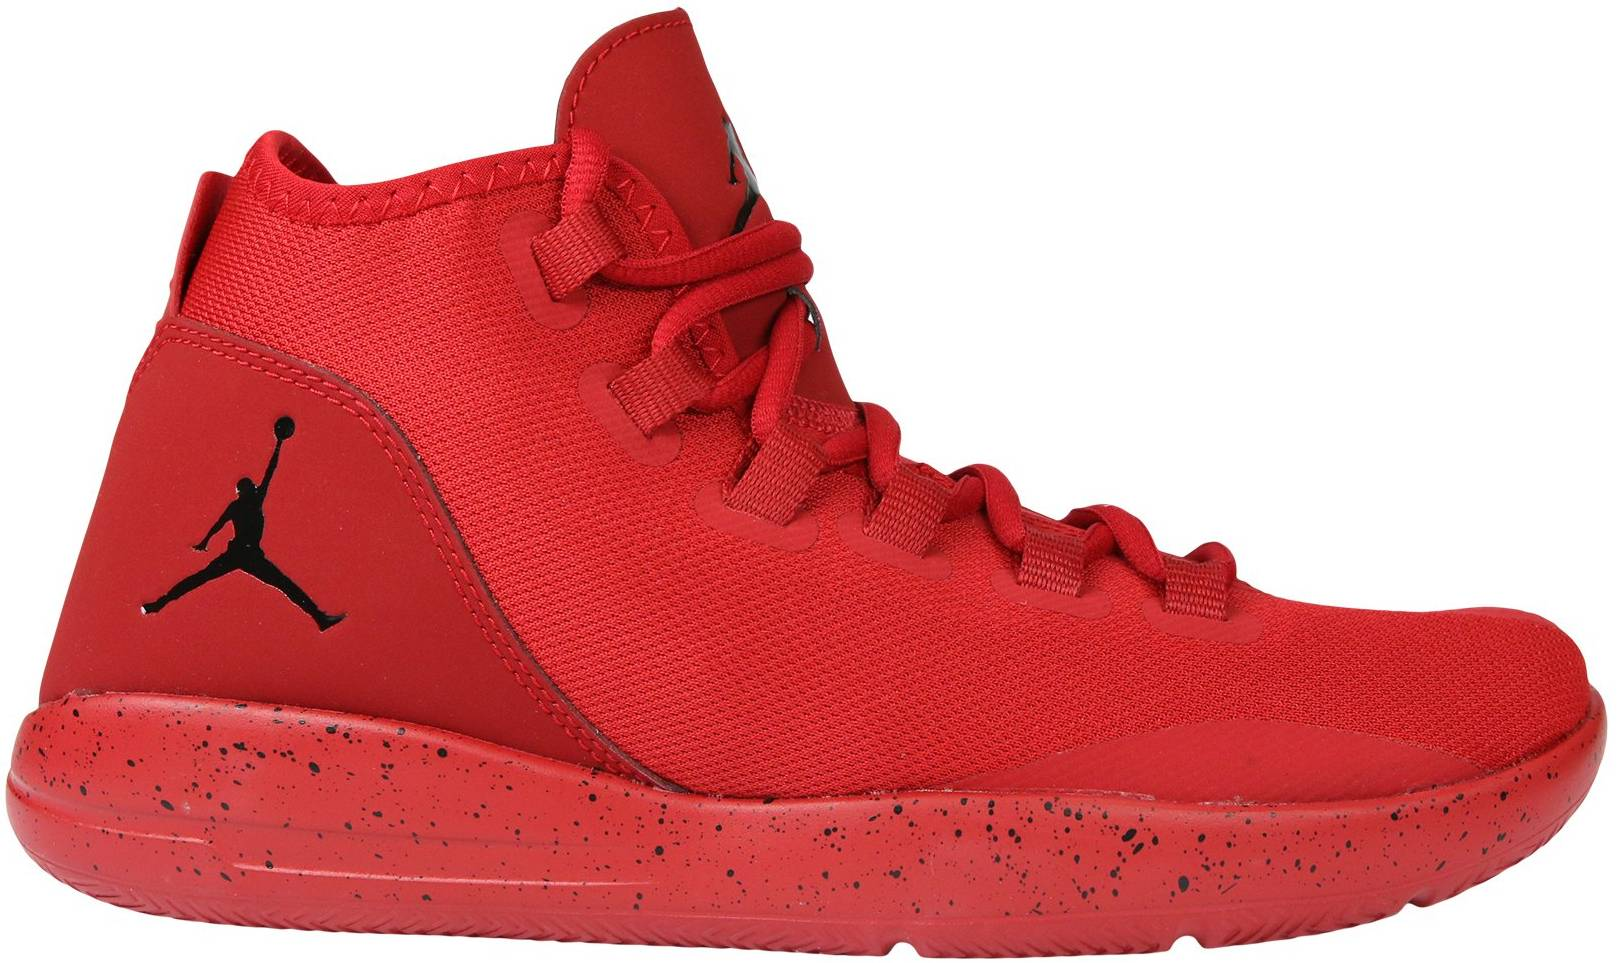 Only $100 + Review of Jordan Reveal